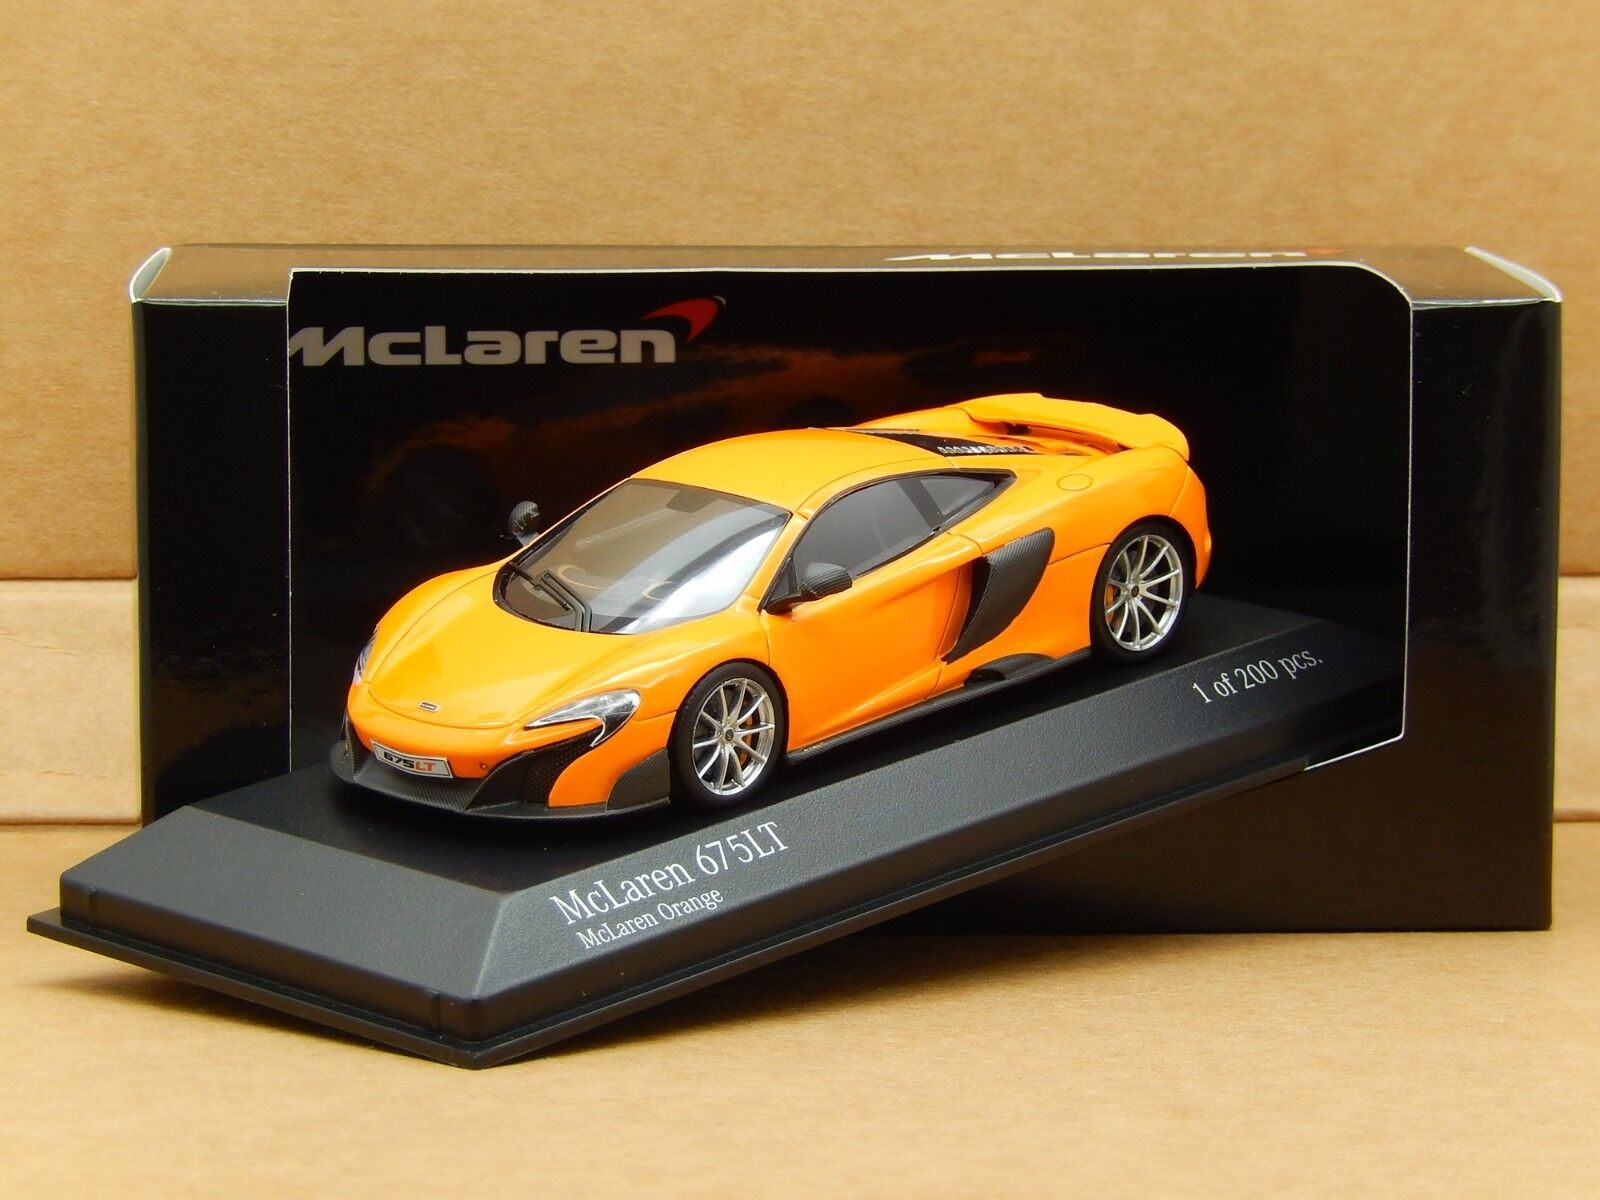 1 43 McLaren 675LT 2015 McLaren orange Minichamps Resin Model 537154321 New Rare